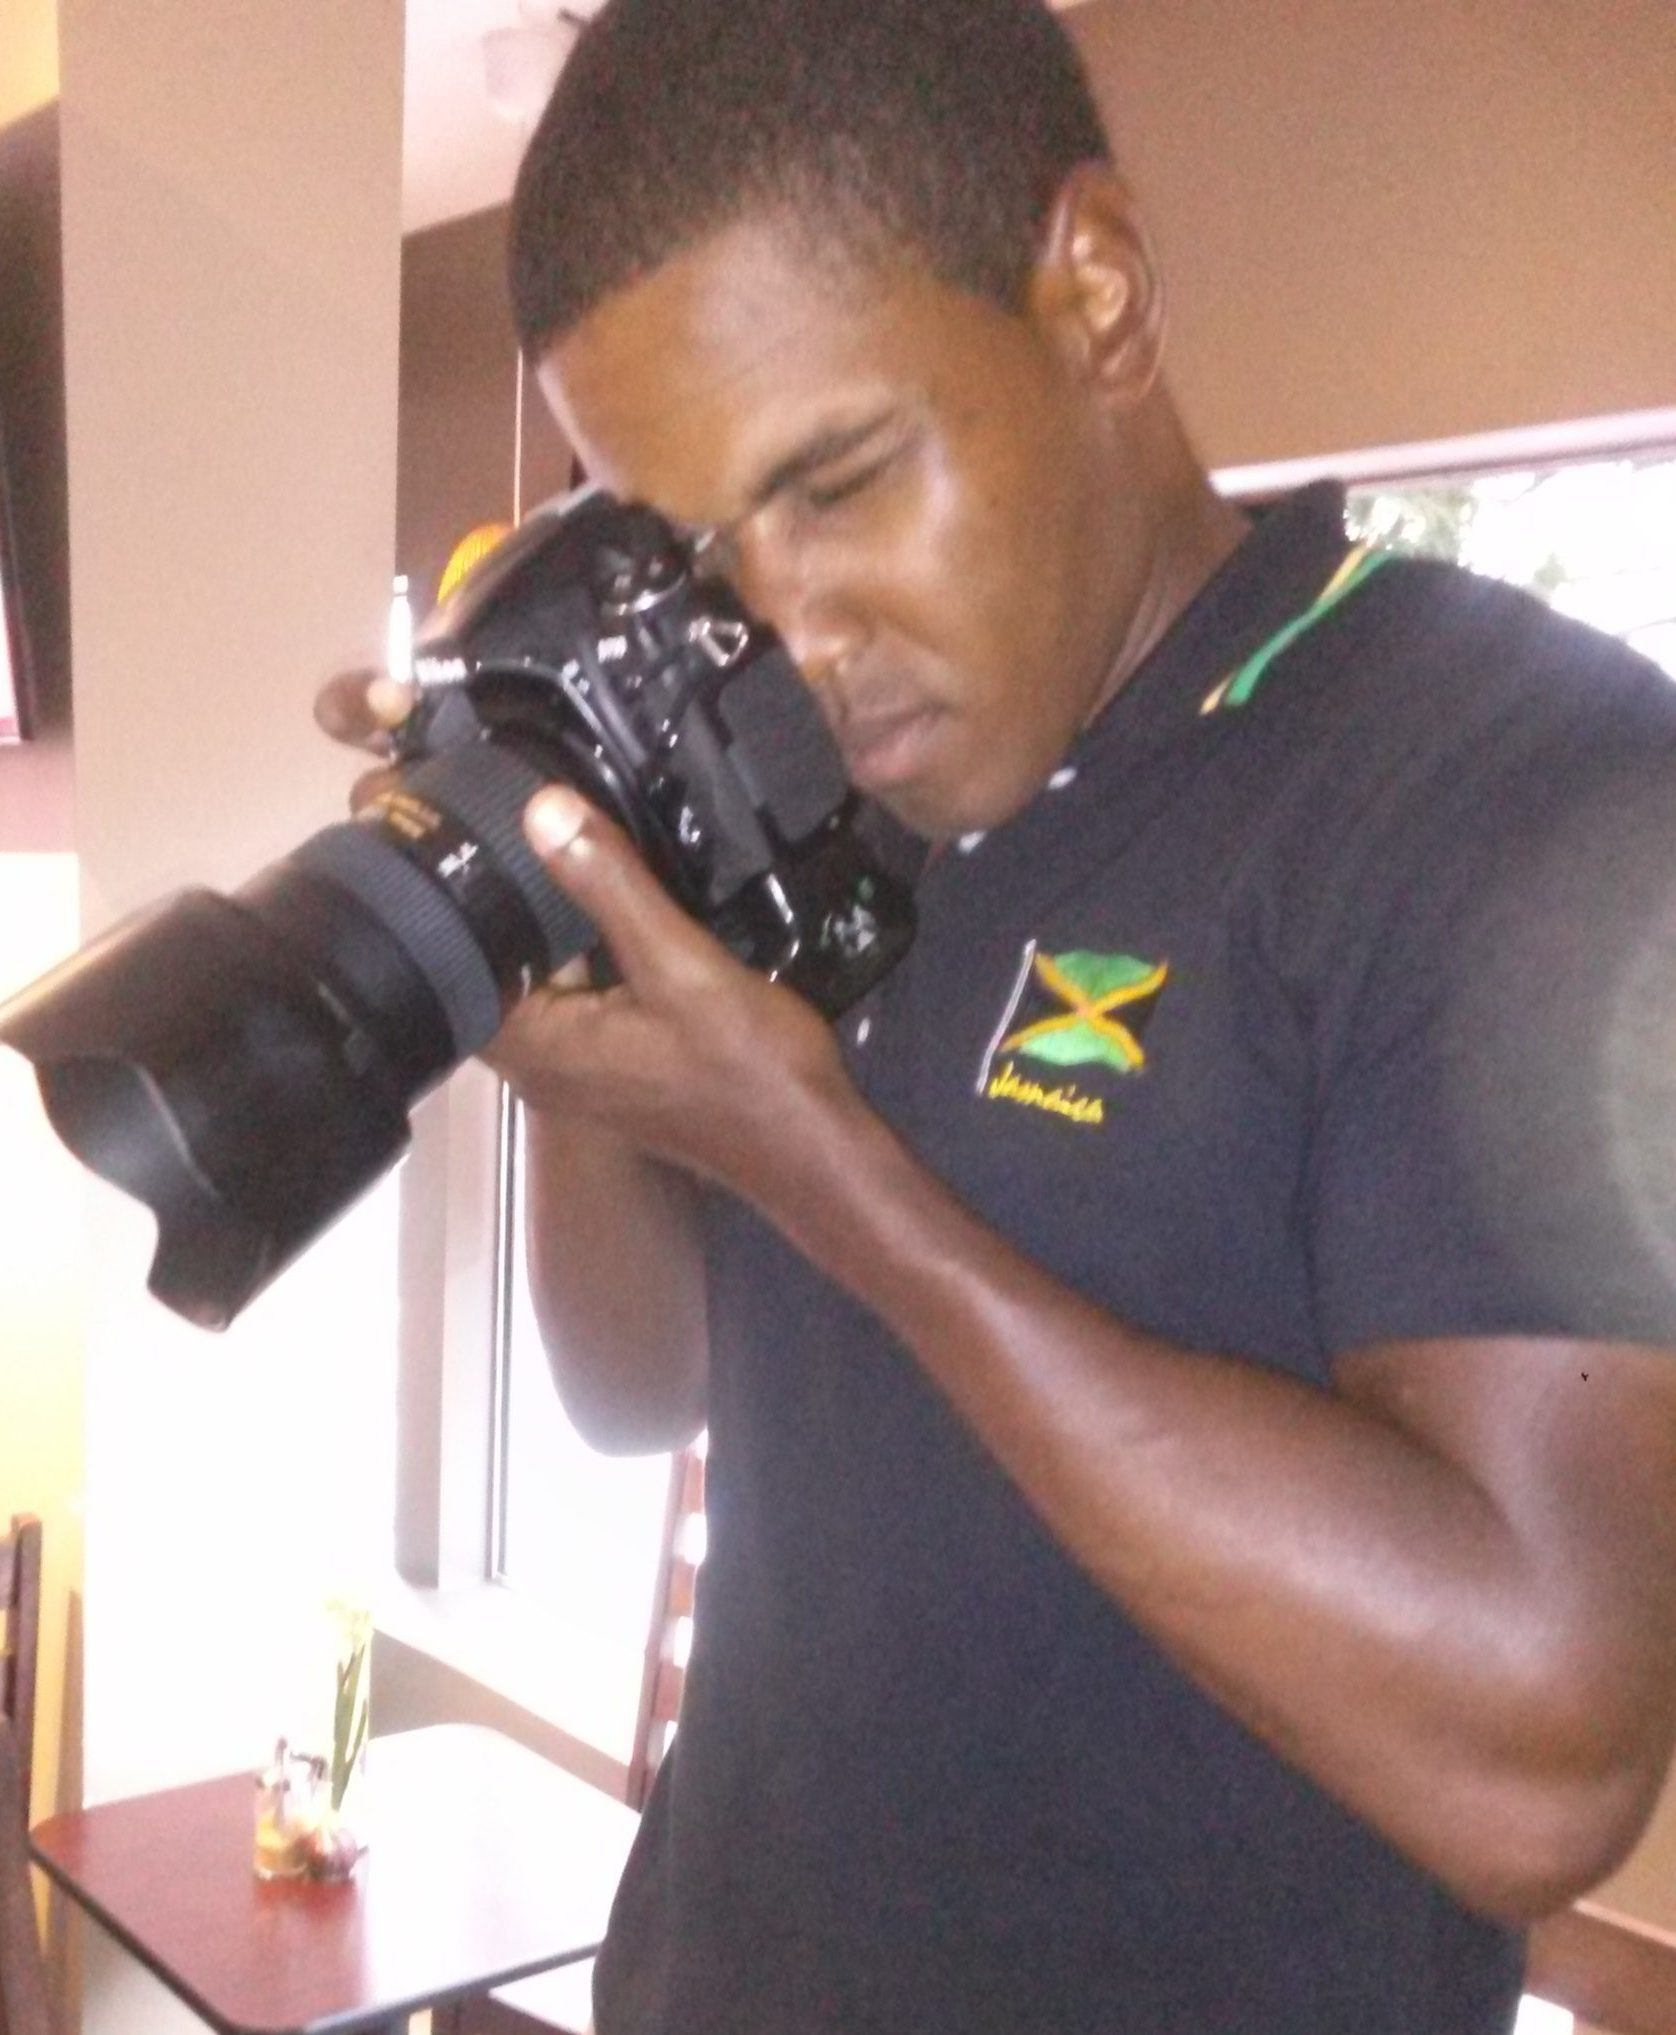 Tyson | Photographer, artist, personal trainer